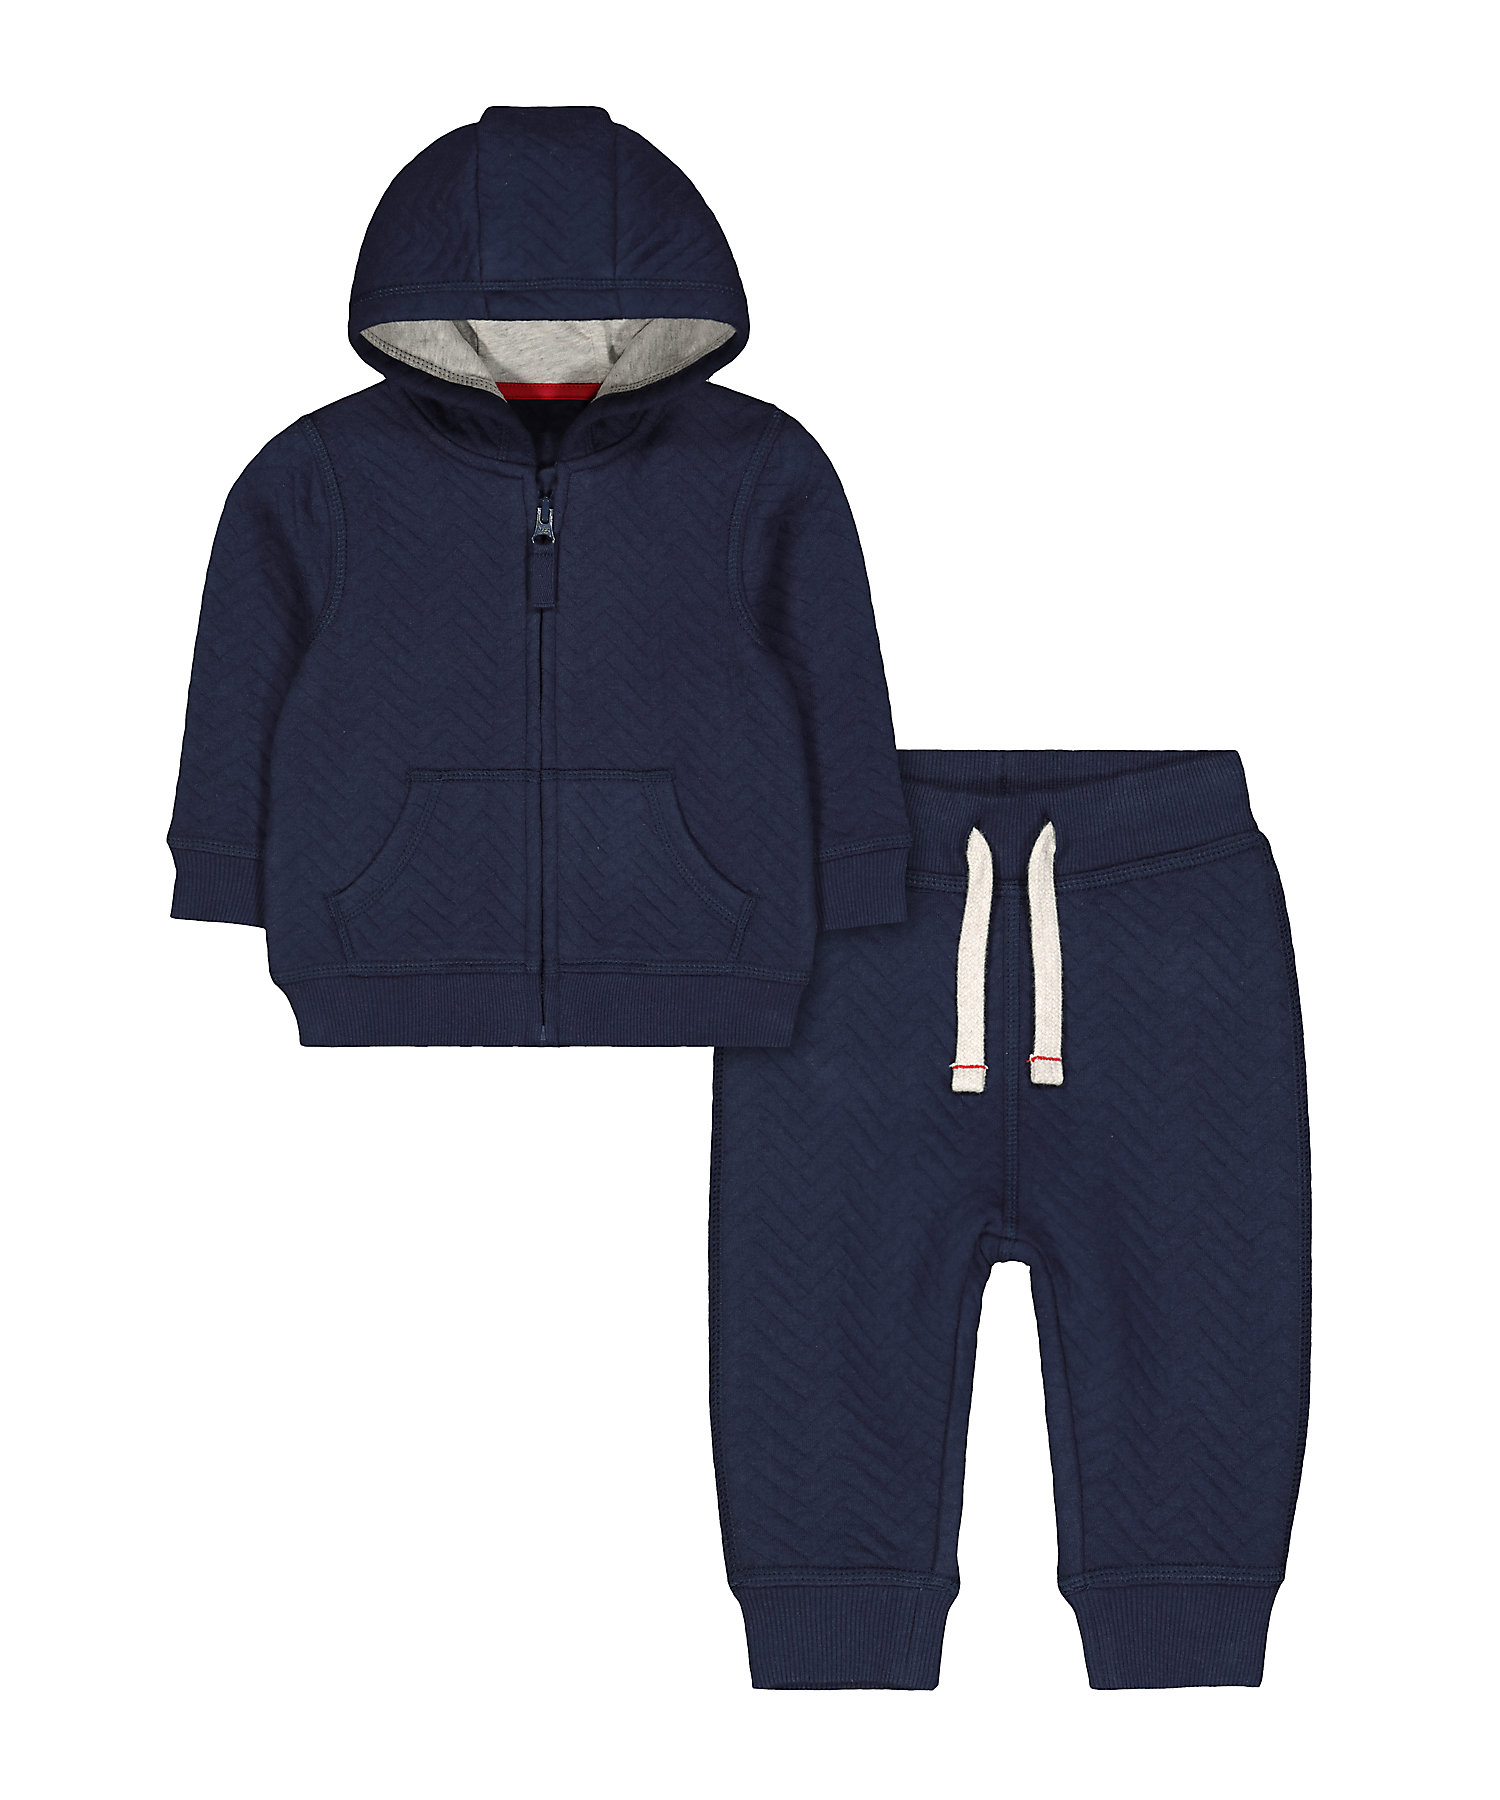 Mothercare | Boys Full Sleeves Hooded Jog Set Quilted - Navy